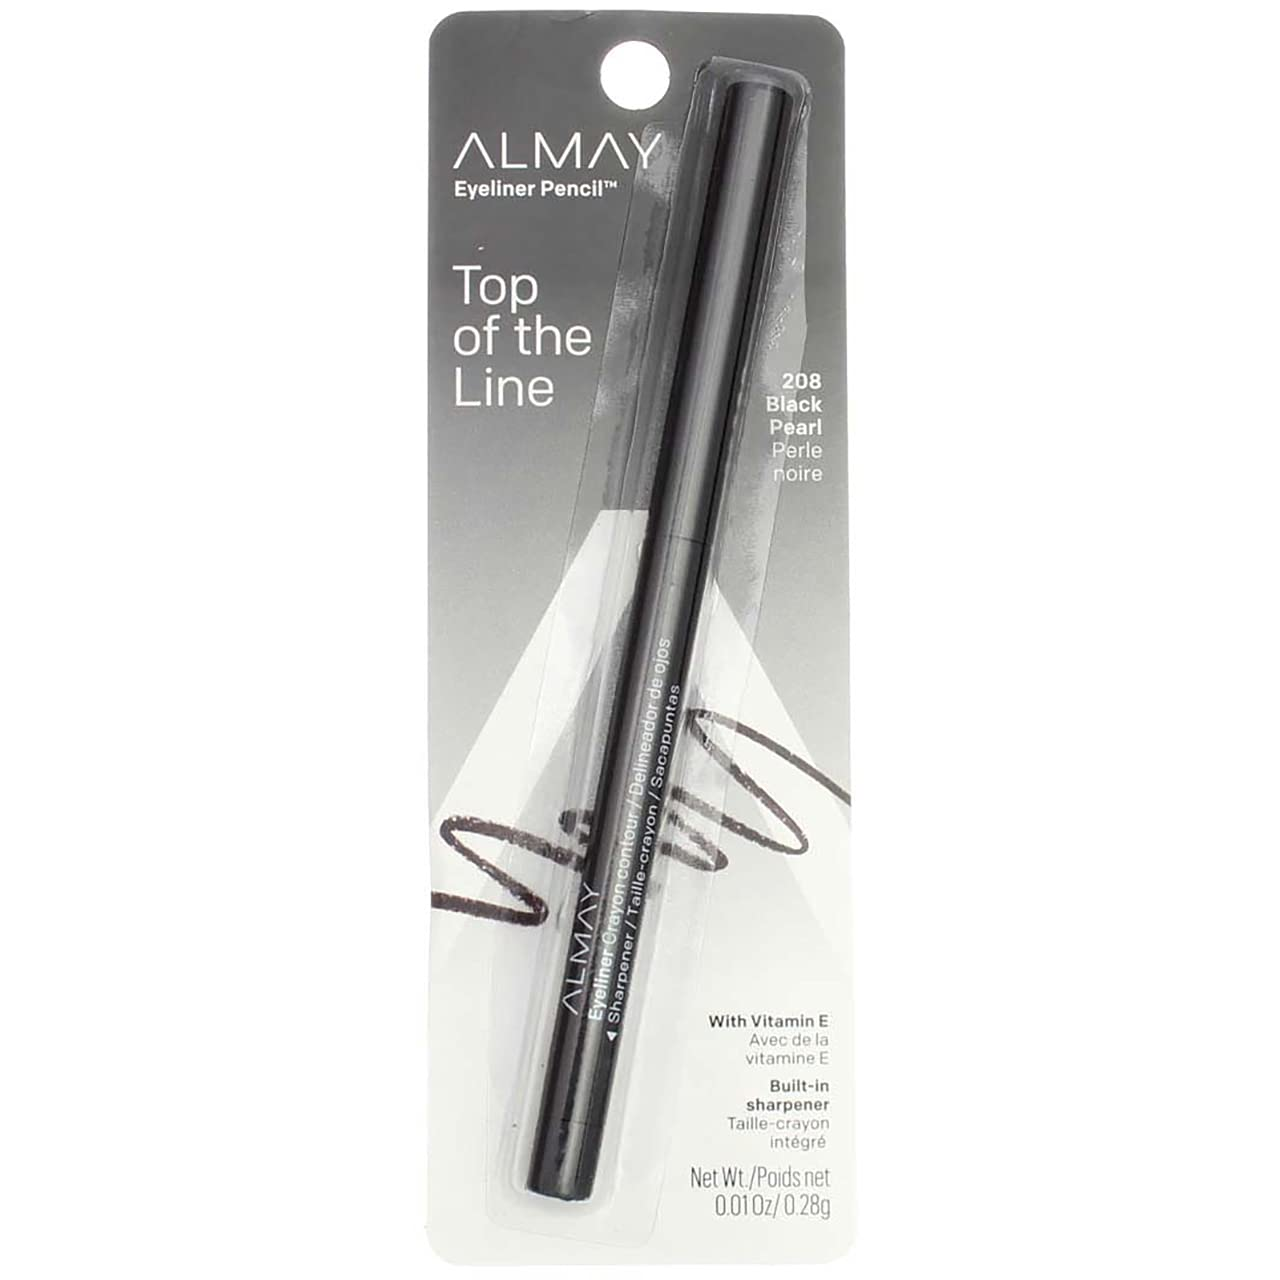 Almay Top of the Line Eyeliner Pearl 208 o Black 0.01 Cheap mail NEW before selling order shopping Pencil